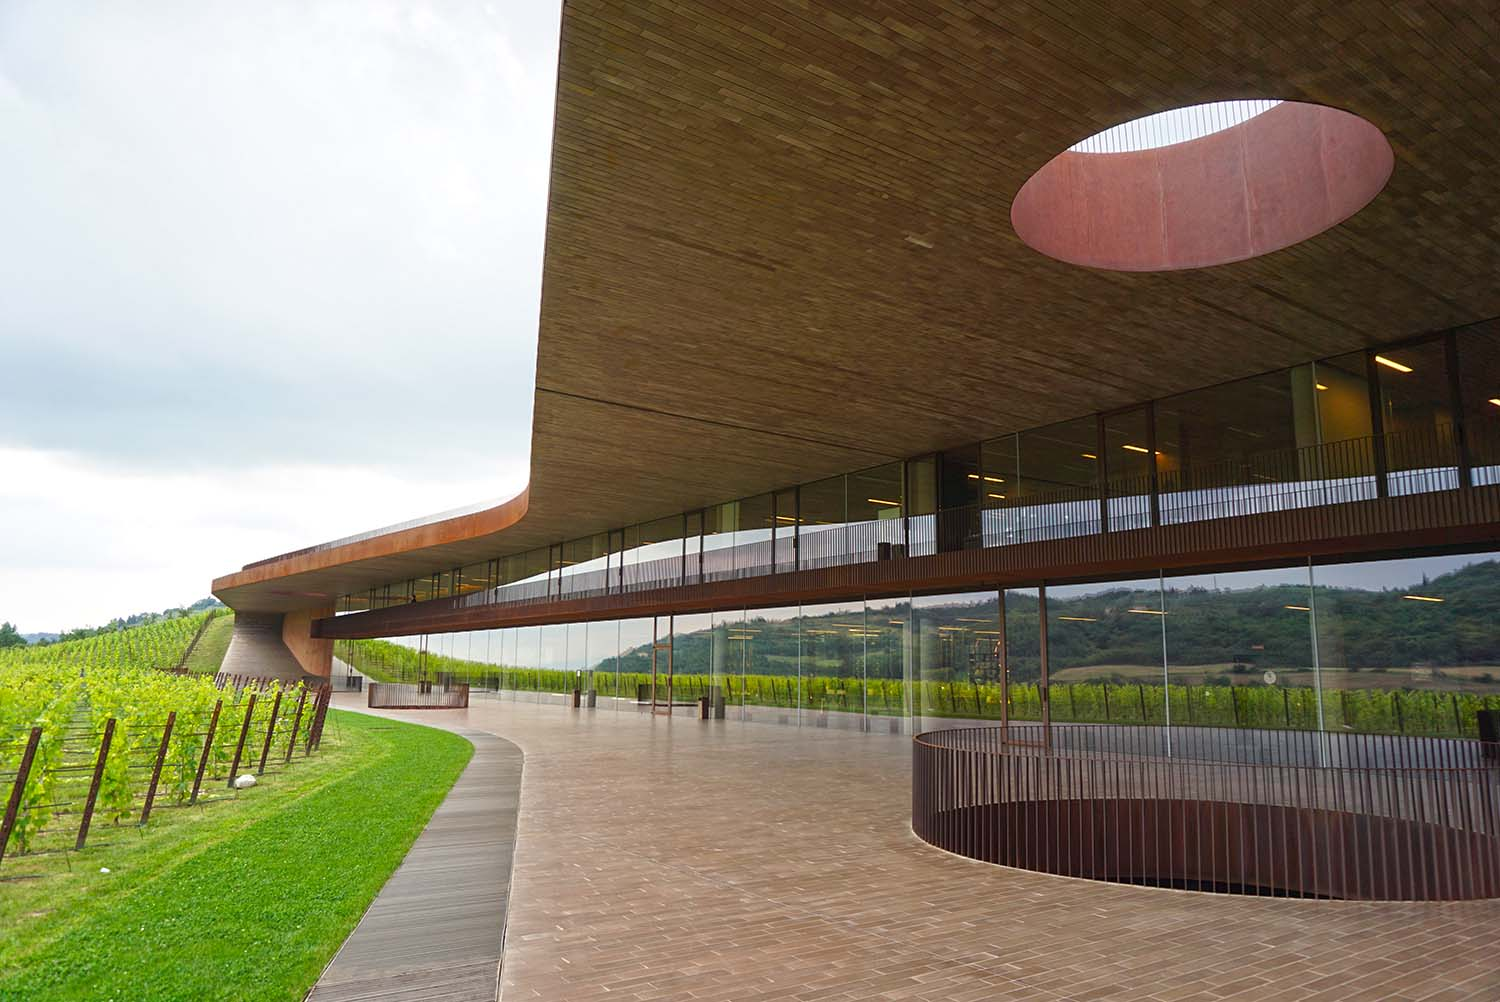 Very modern and cool lokiing Antinori winery in Tuscany